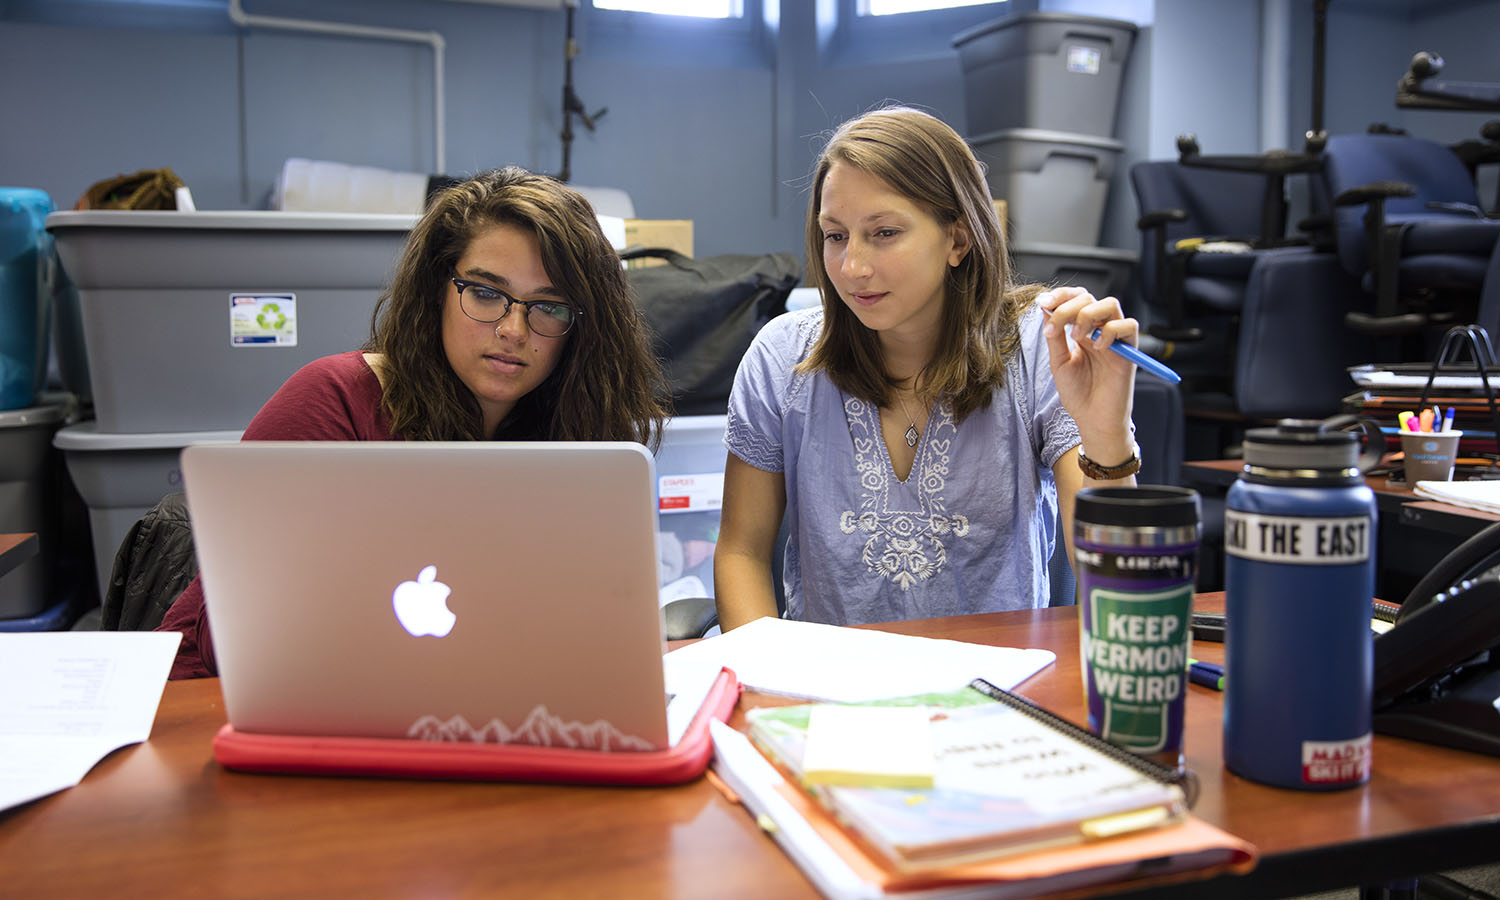 Audrey Bates '17 and Bree von Bradsky â16 plan the upcoming adventures of this yearâs POAP trips.